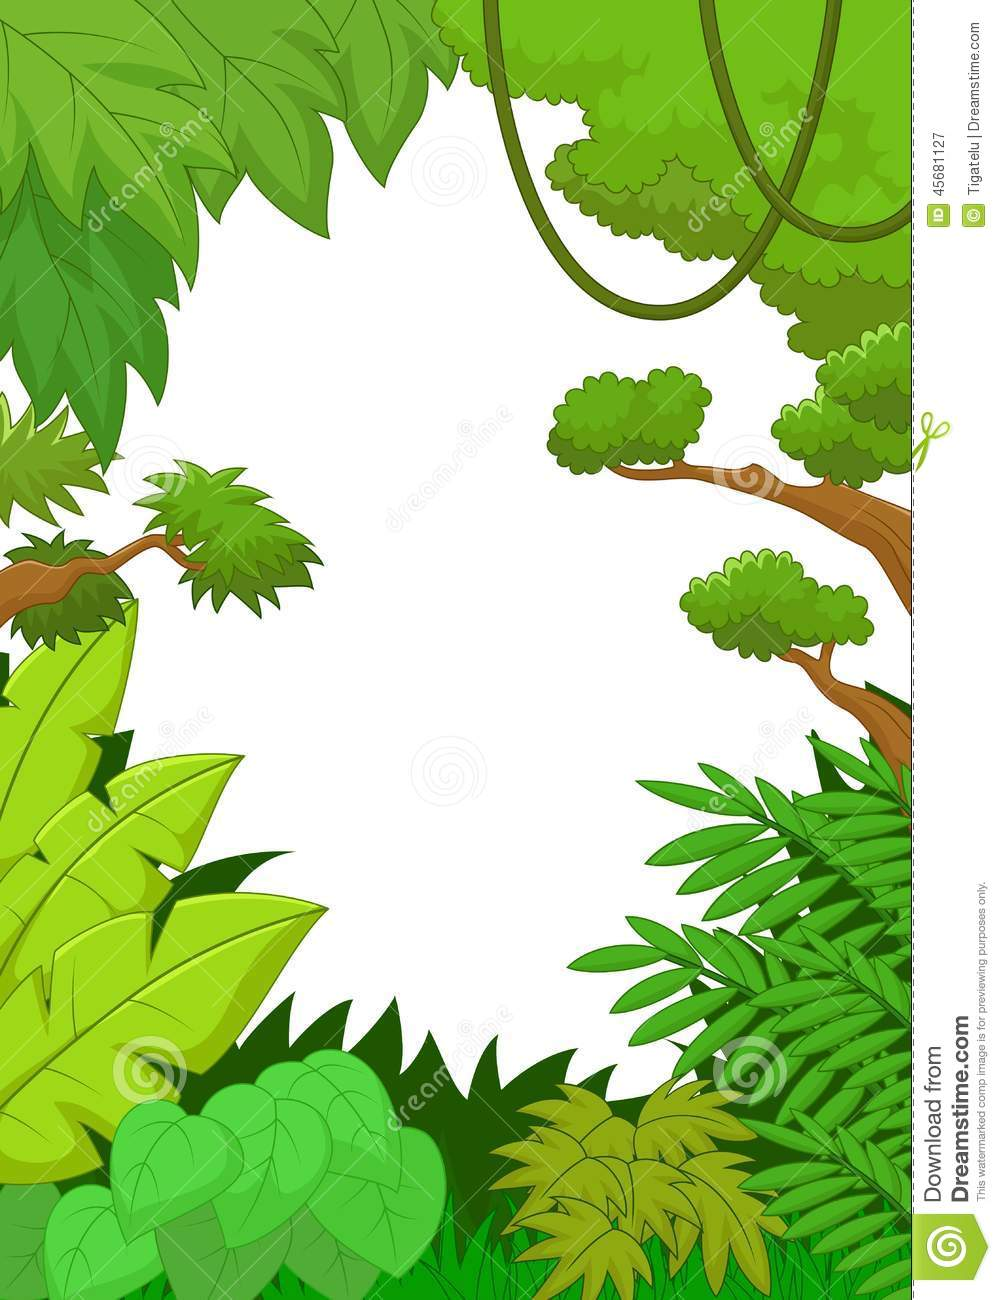 tropical rainforest clipart at getdrawings com free for BBQ Clip Art tropical foliage clipart